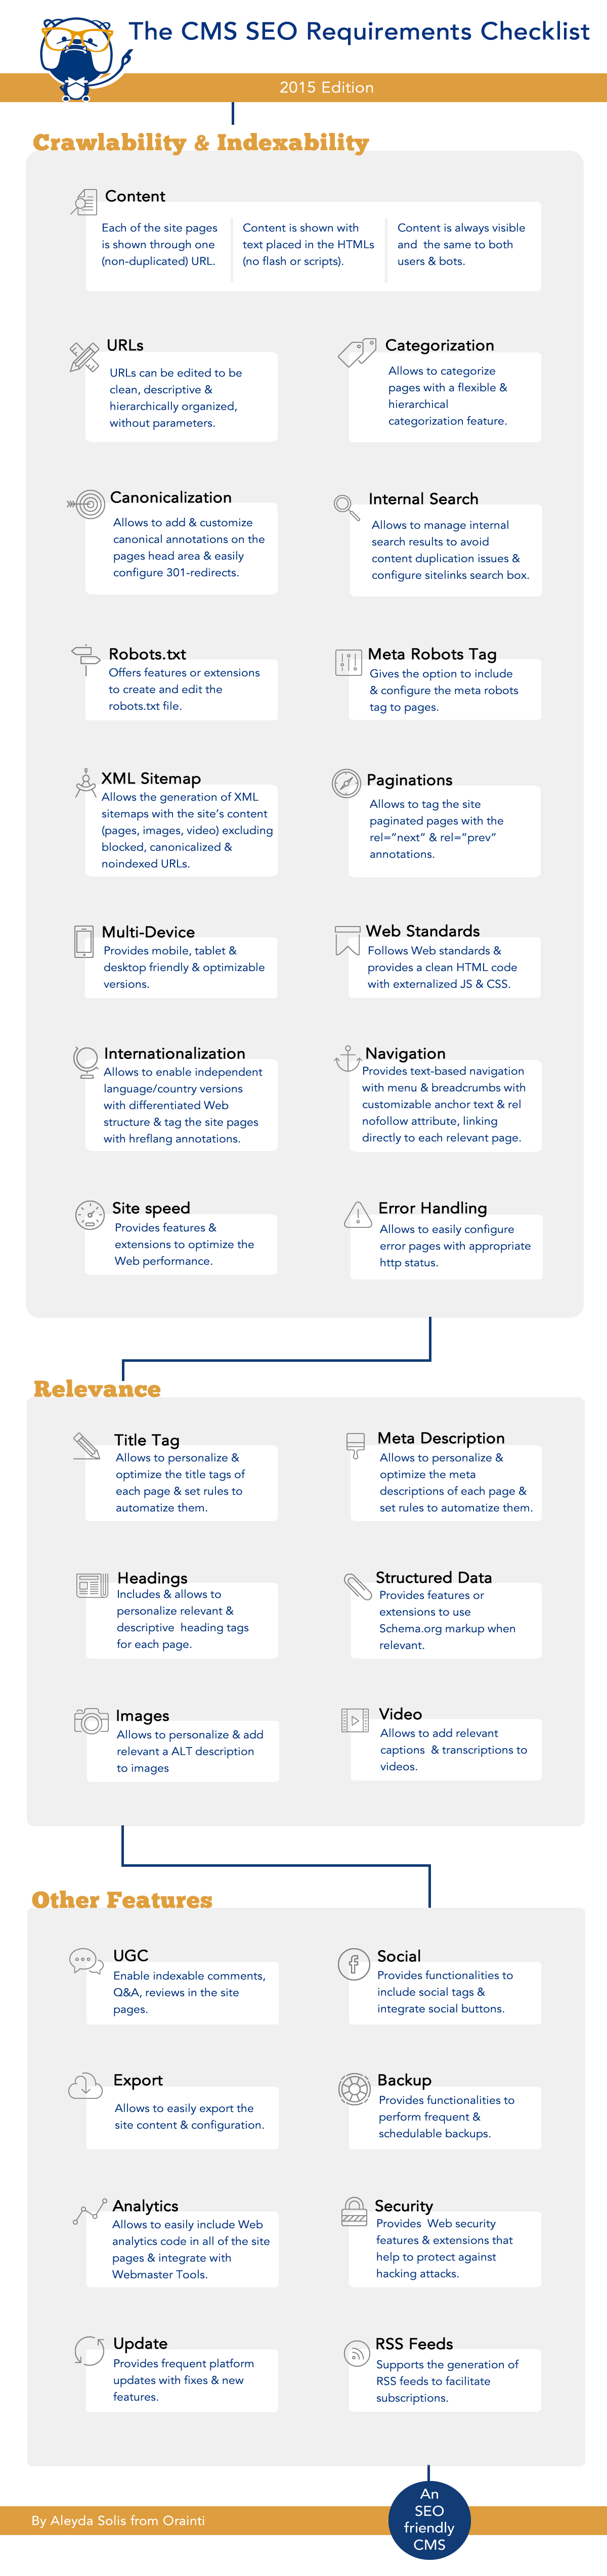 SEO CMS Requirements Checklist